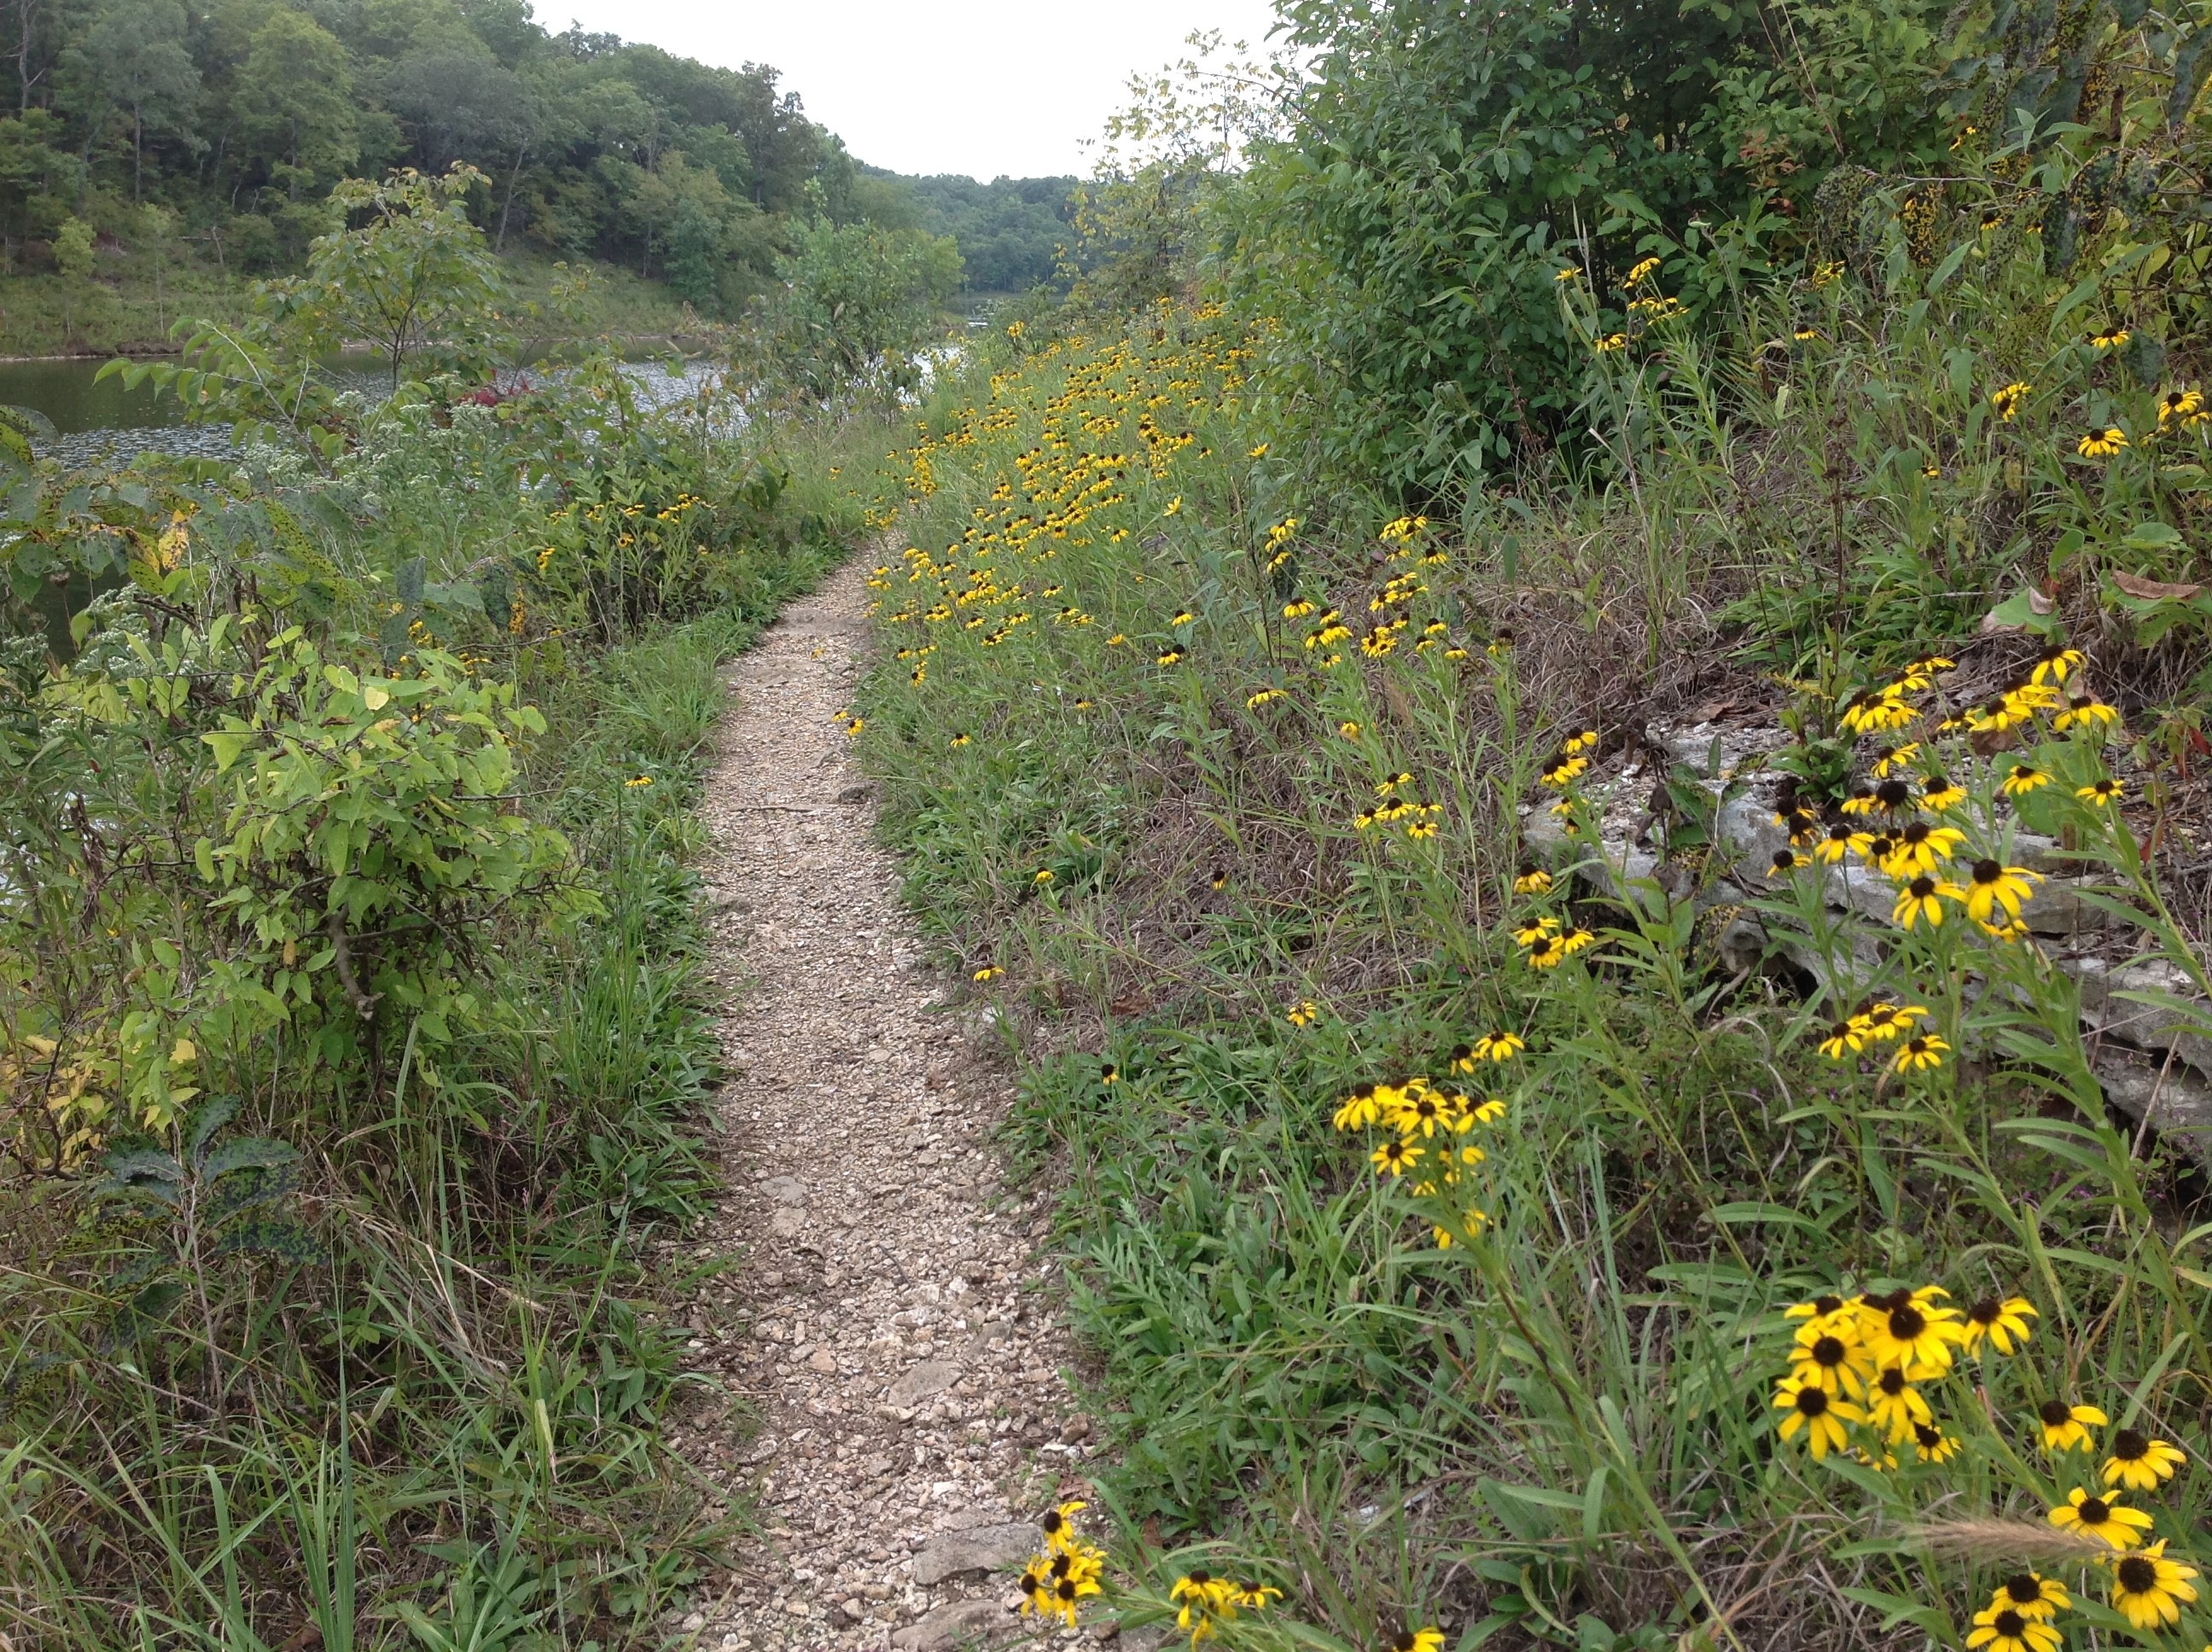 Path with yellow flowers